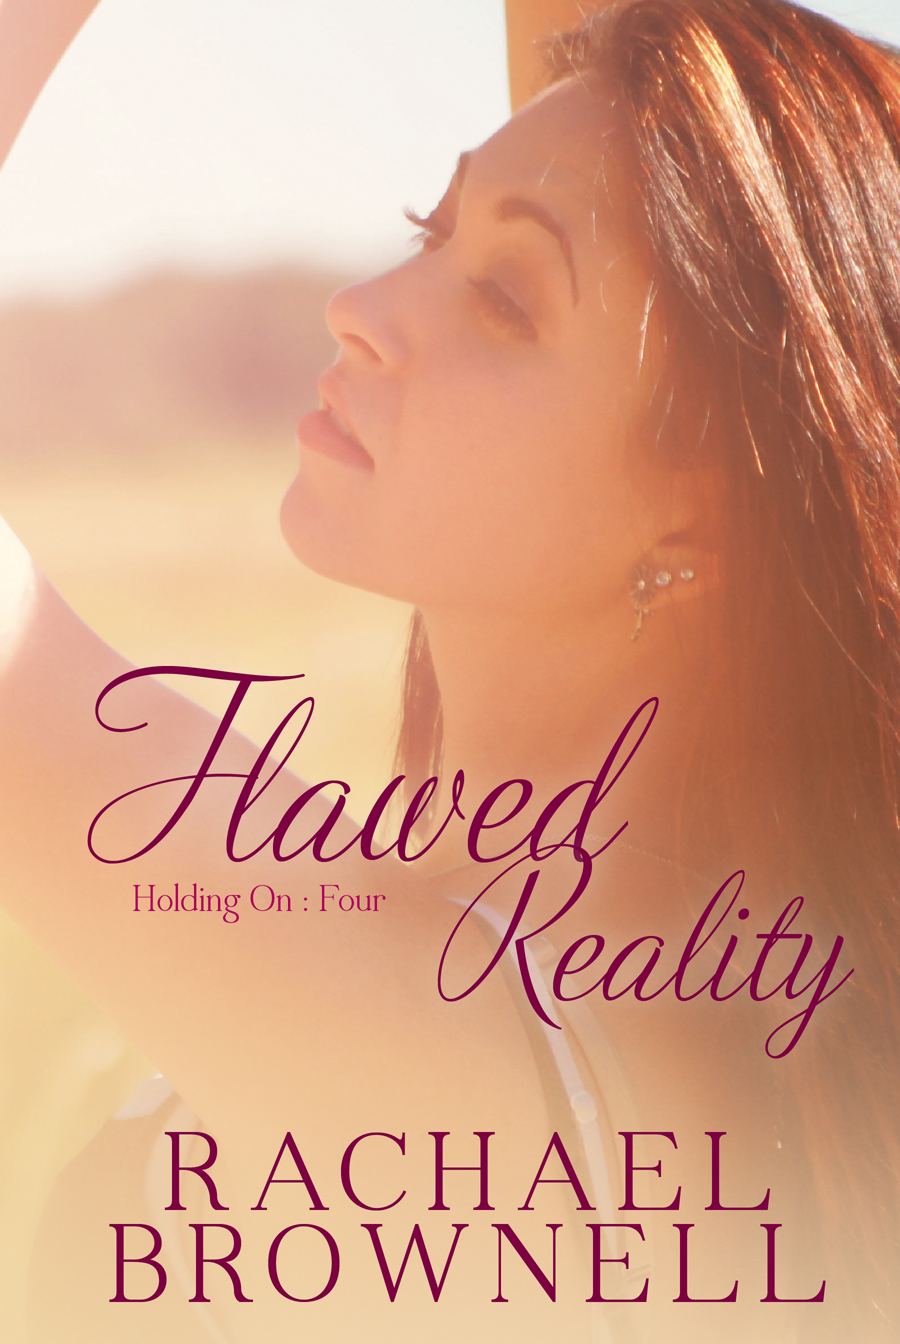 Flawed Reality Rachael Brownell